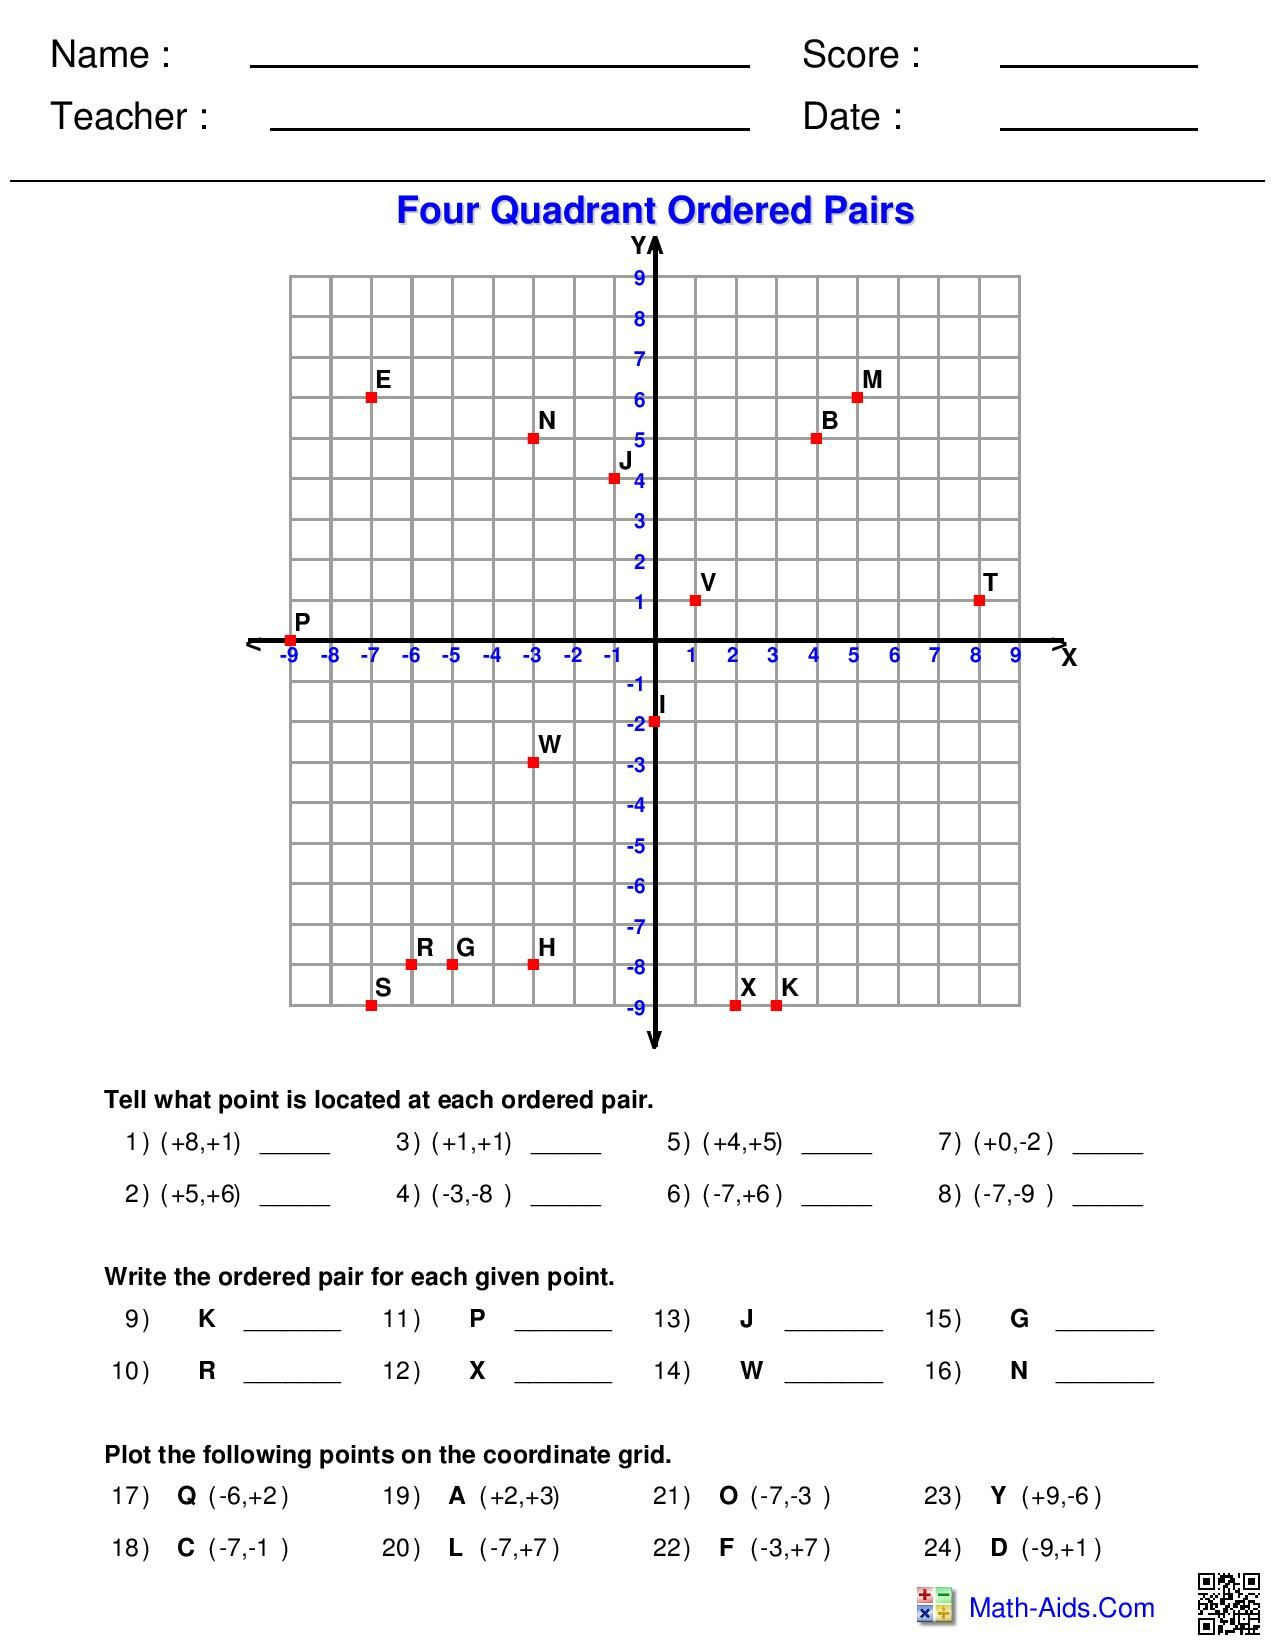 Ordered Pairs Worksheet 5th Grade Four Quadrant ordered Pairs Worksheet